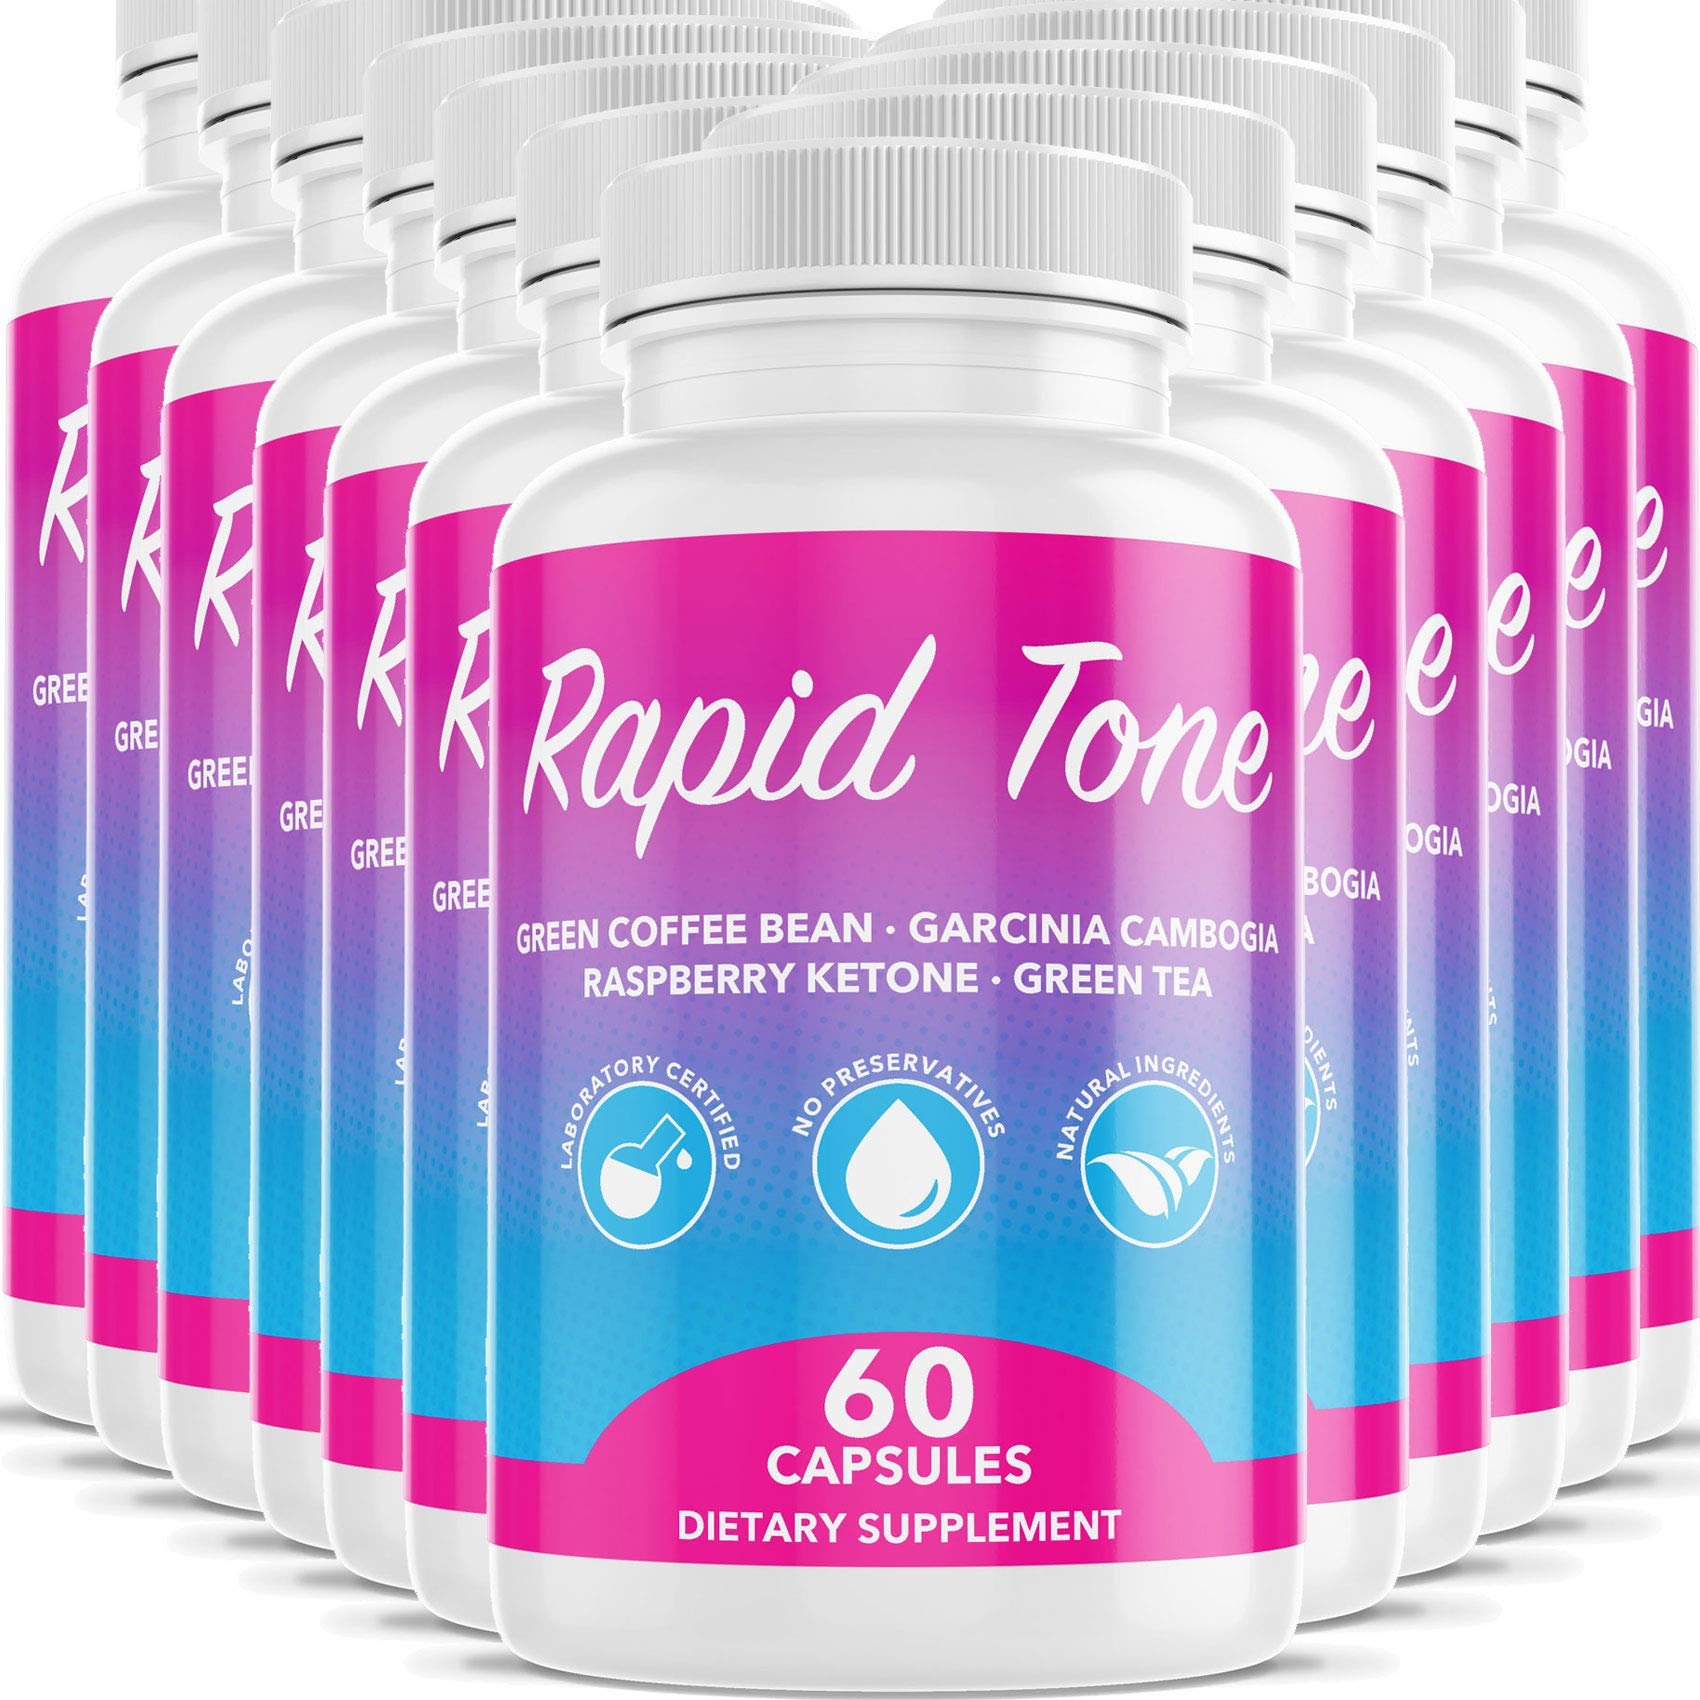 Rapid Tone Weight Loss Pills Supplement - Burn Fat Quicker - Carb Blocker, Appetite Suppressant, Fat Burner - Natural Thermogenic Extreme Diet Fast WeightLoss for Women Men (12 Month Supply) by Rapid Tone